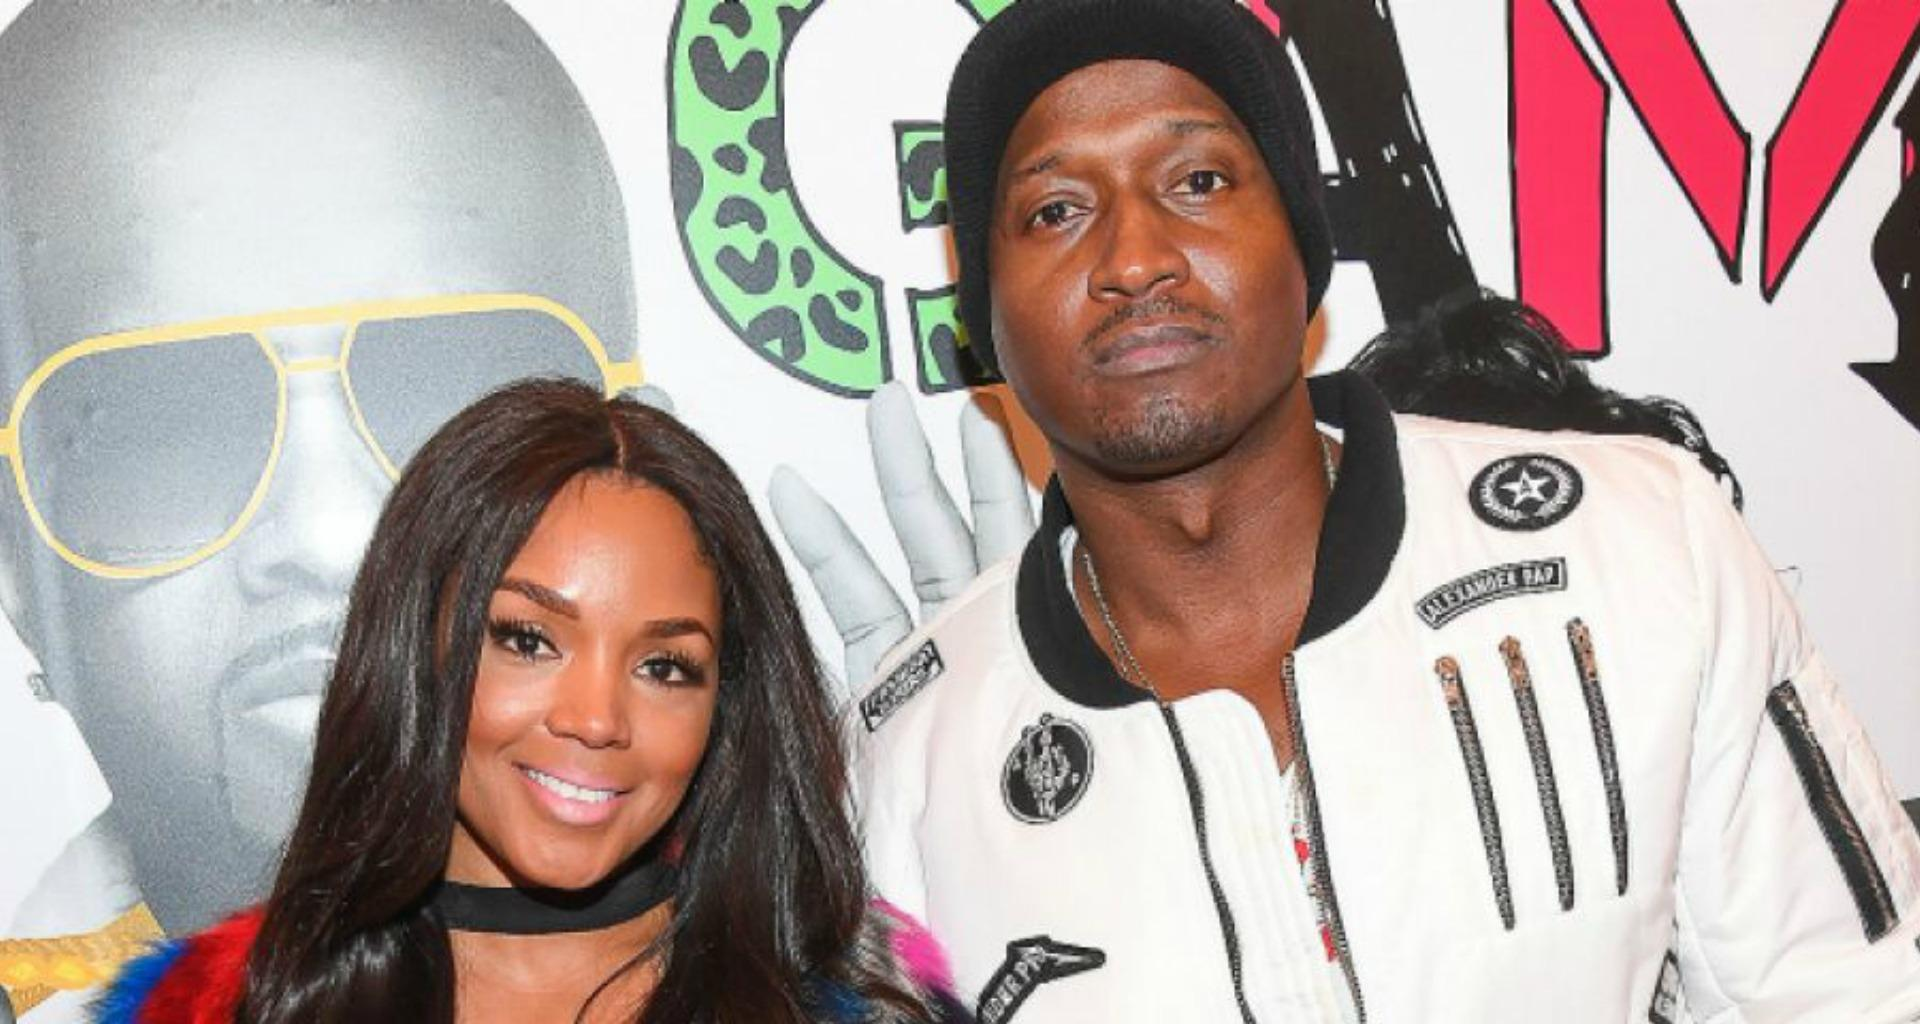 Kirk Frost Films Rasheeda While She's Decorating The Christmas Tree - Fans Say They're Proud Of How She Got Over Kirk's Cheating